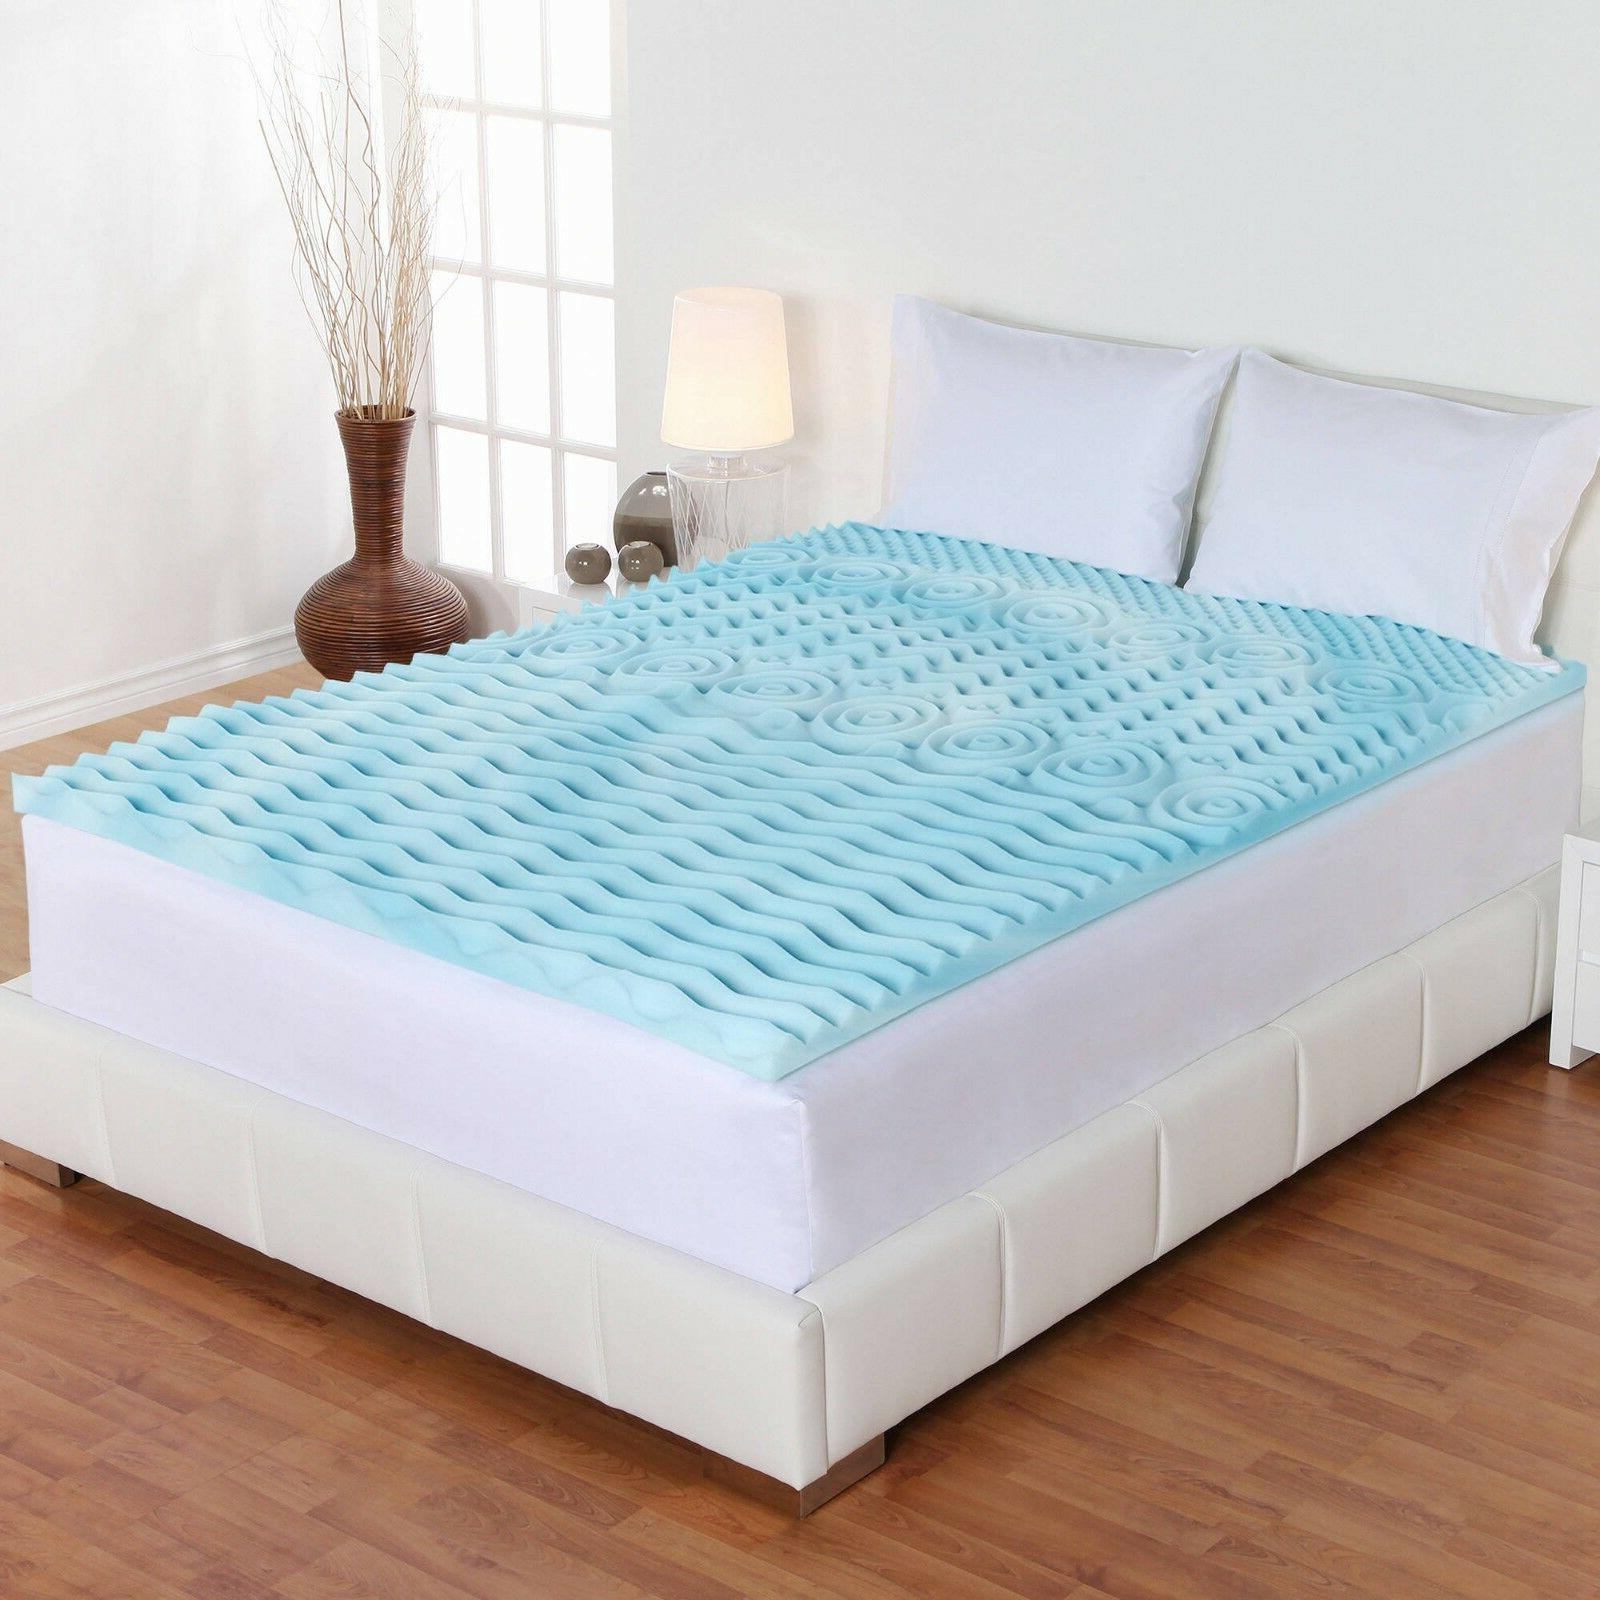 Orthopedic Bed Pad 5-Zone Authentic Comfort 2-Inch Mattress Sizes